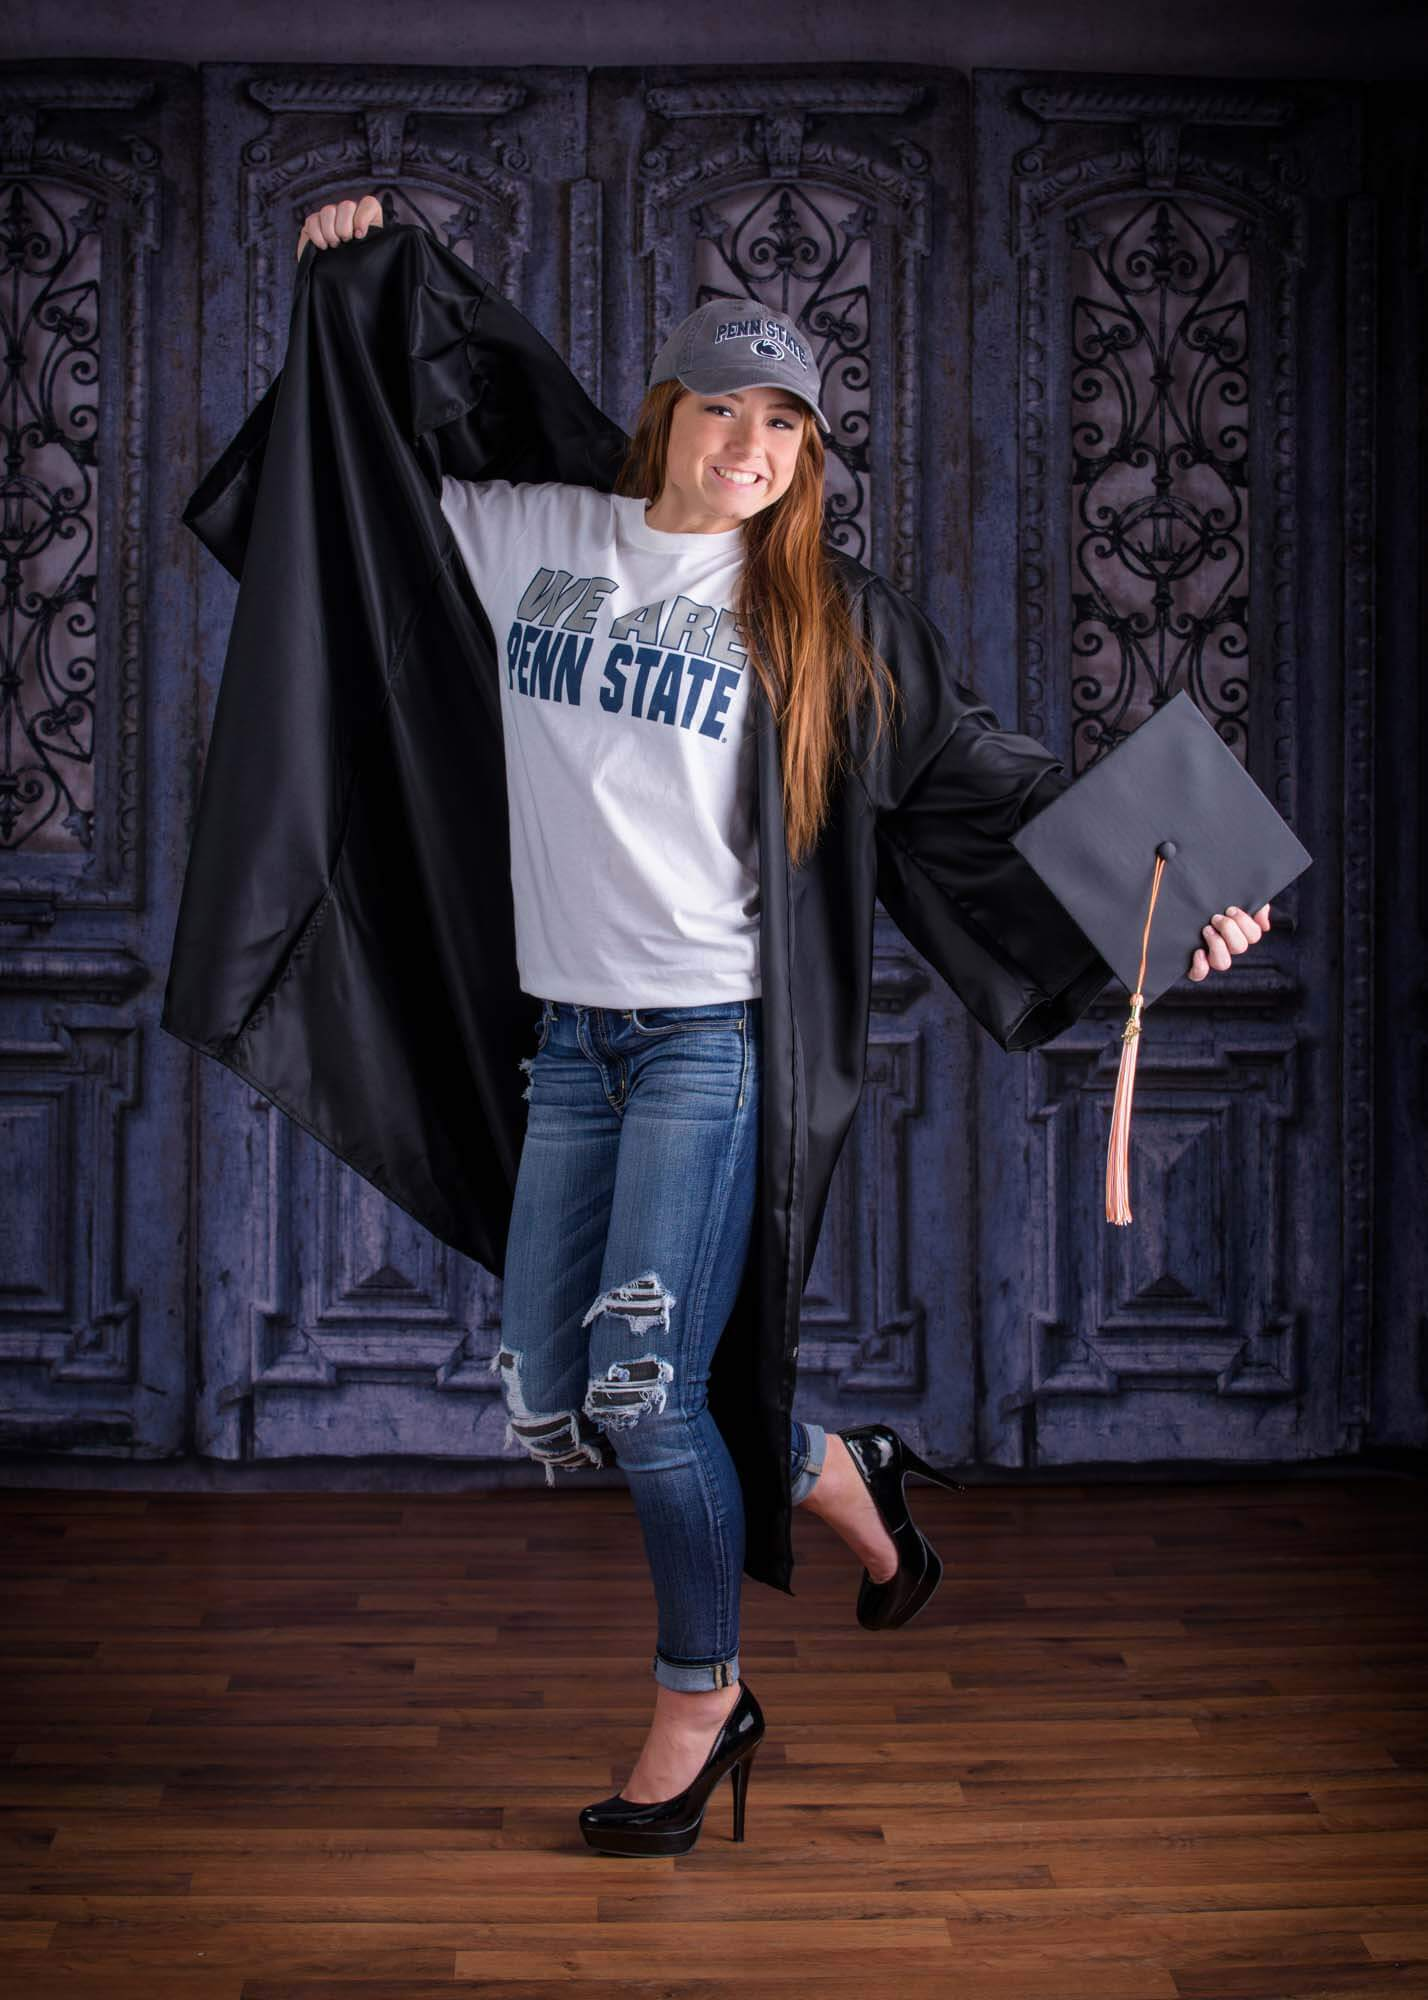 senior picture girl cap and gown fun